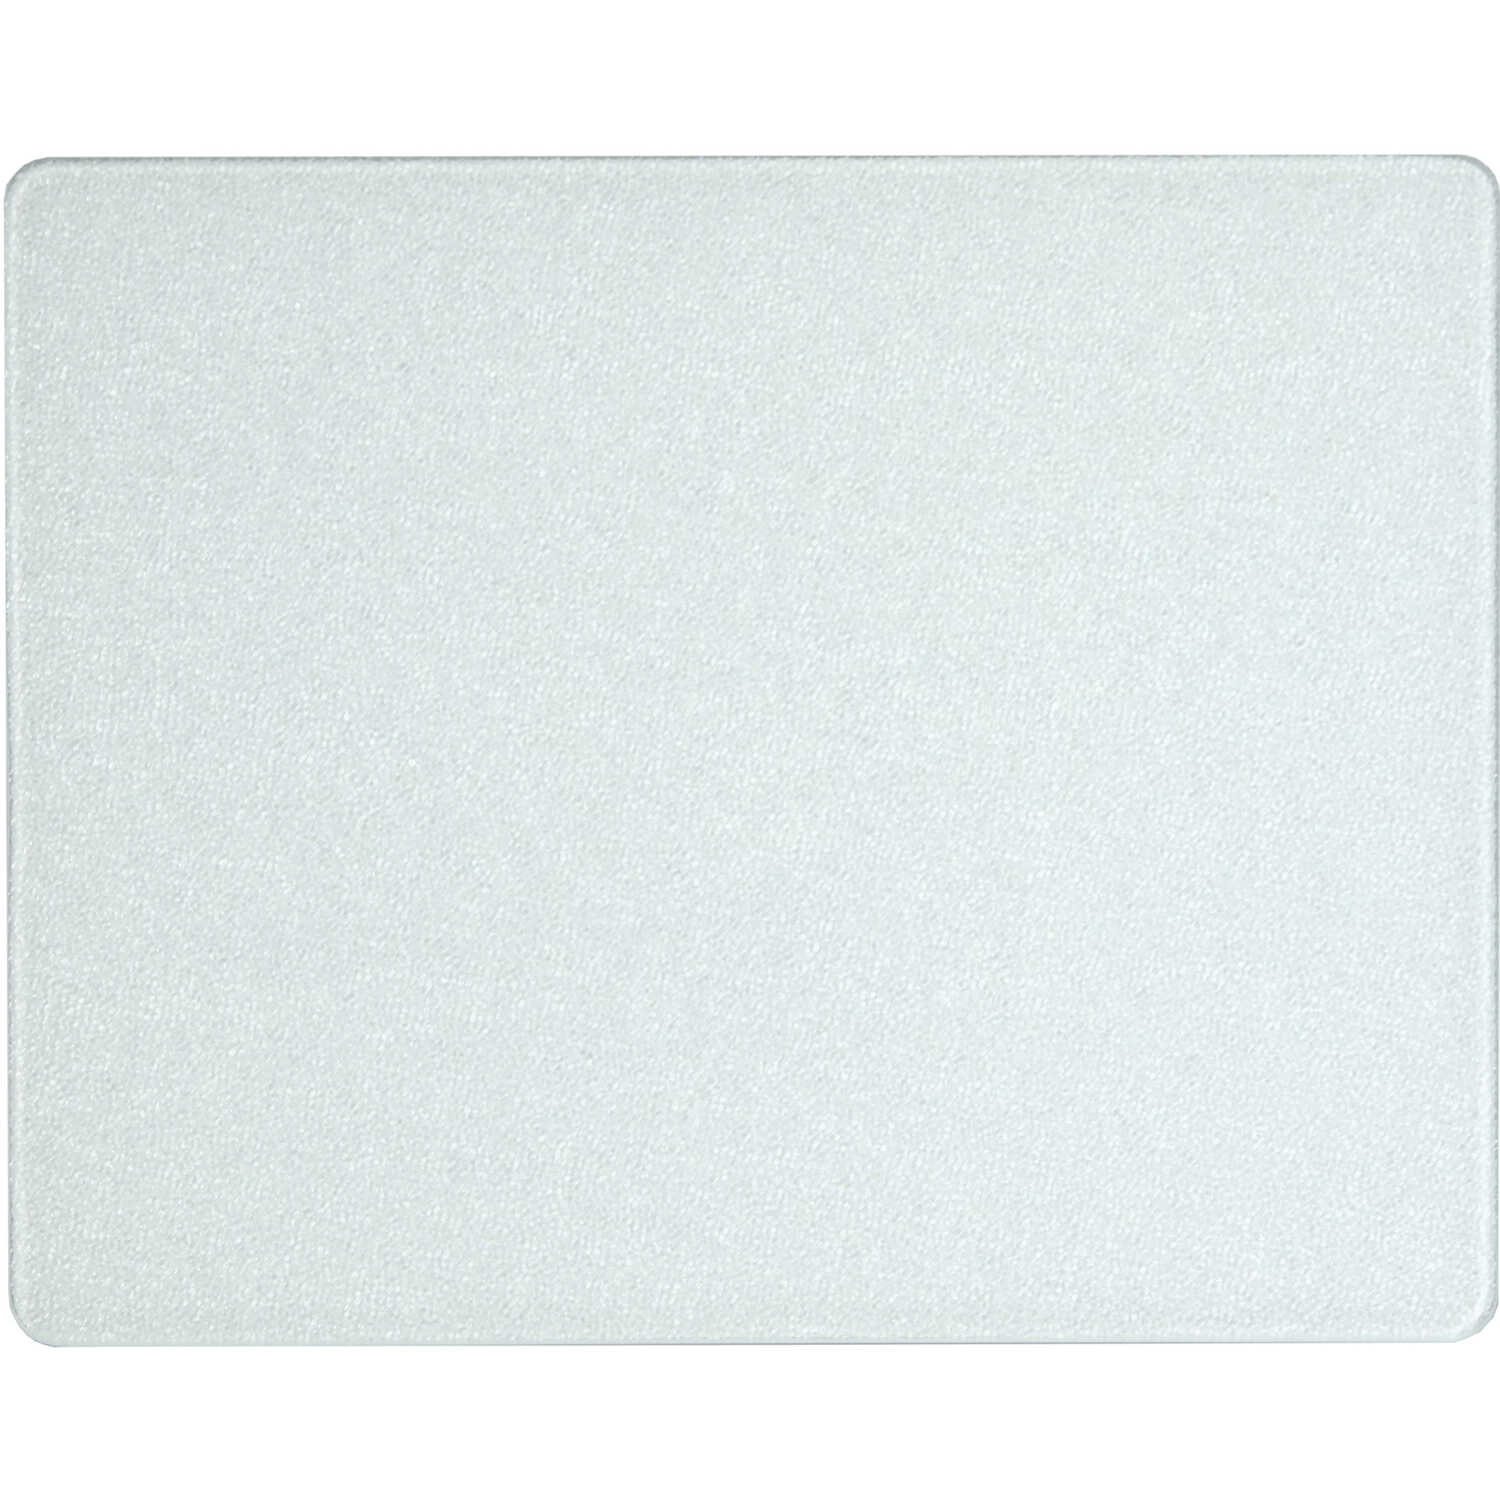 Corelle  12 in. W x 15 in. L Textured  White  Glass  Cutting Board